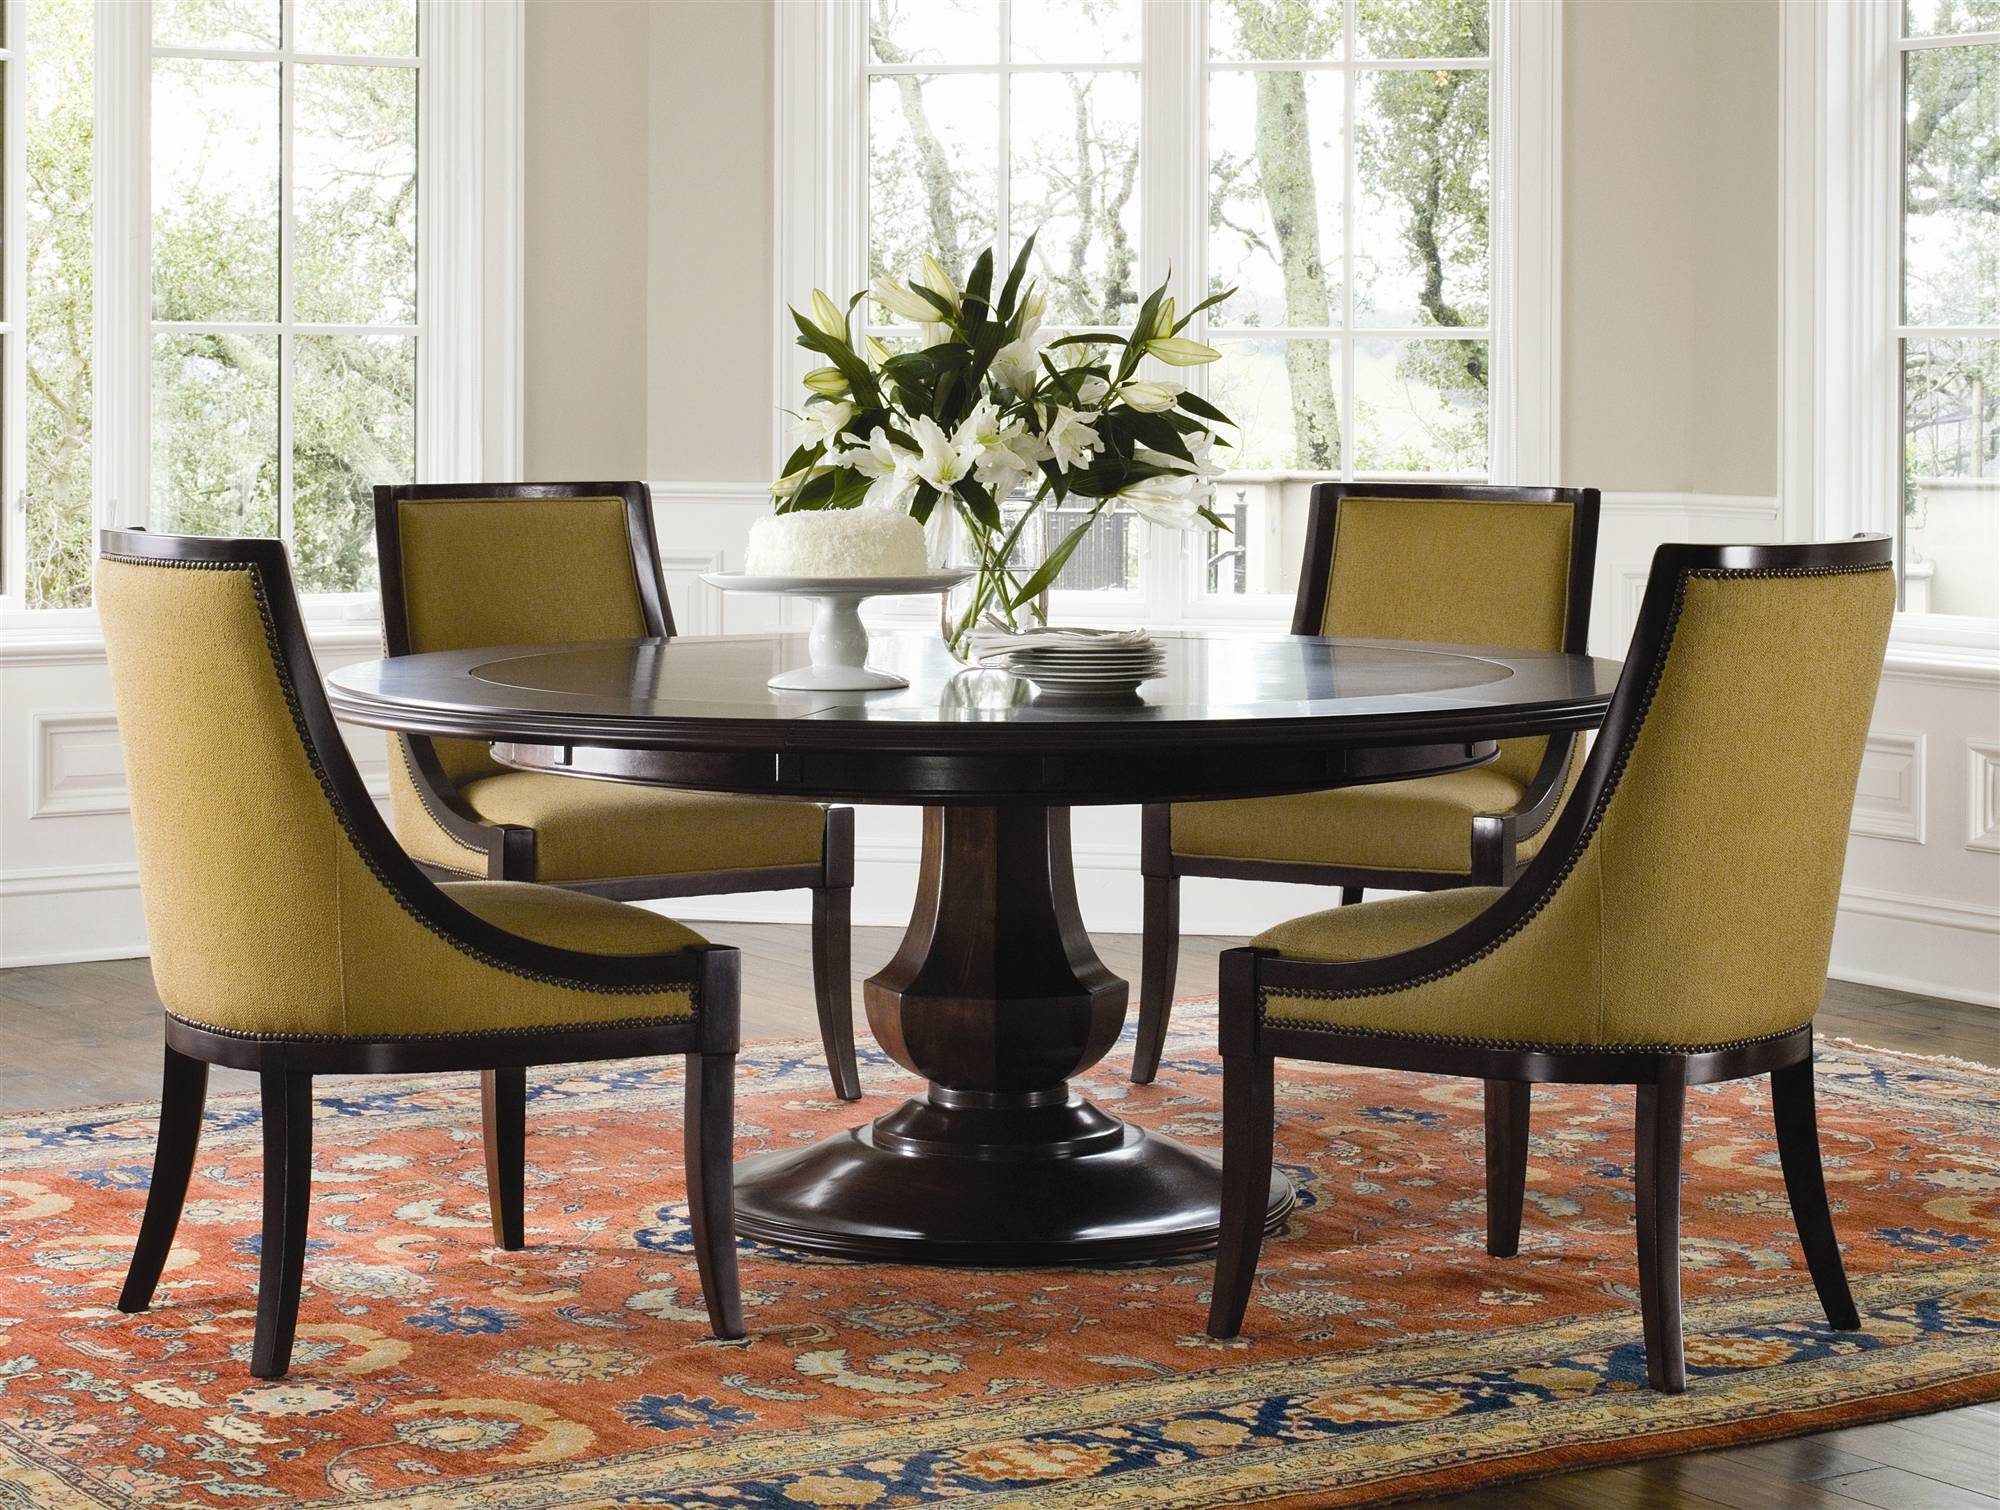 Attirant Big Dark Wooden Round Dining Table Set With Leaf And Cool Chairs Plus  Luxury Rug